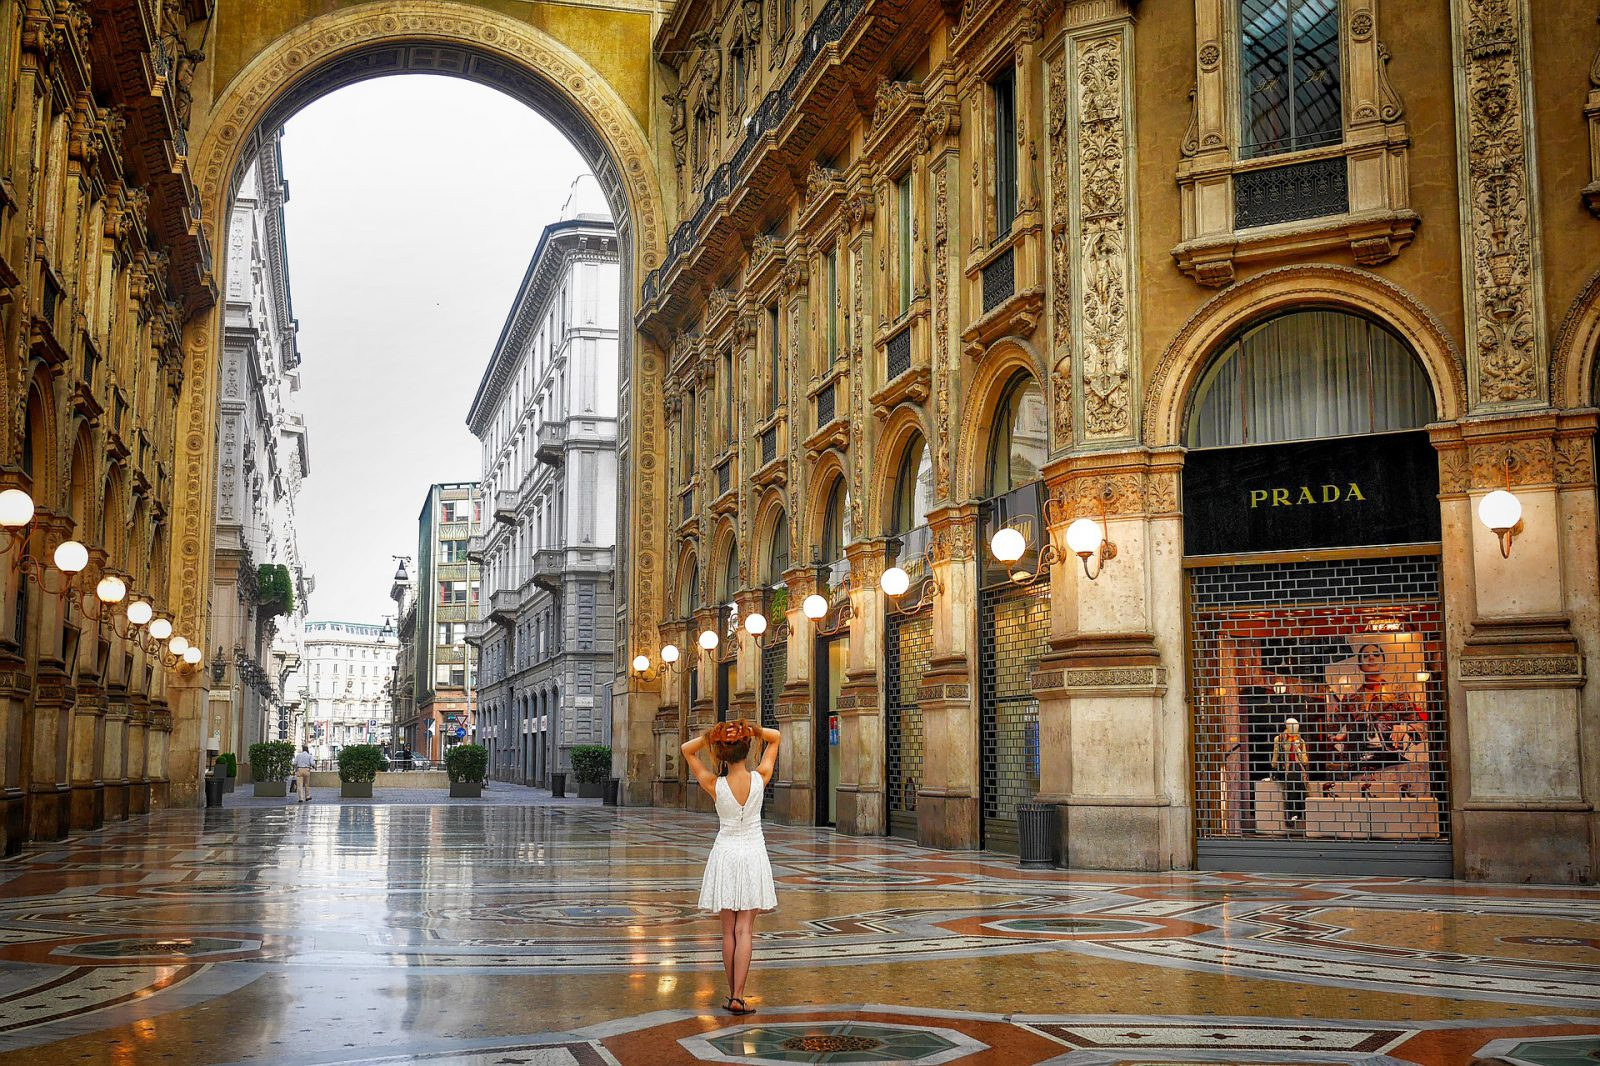 Flight Deal from Los Angeles Area to Milan Italy